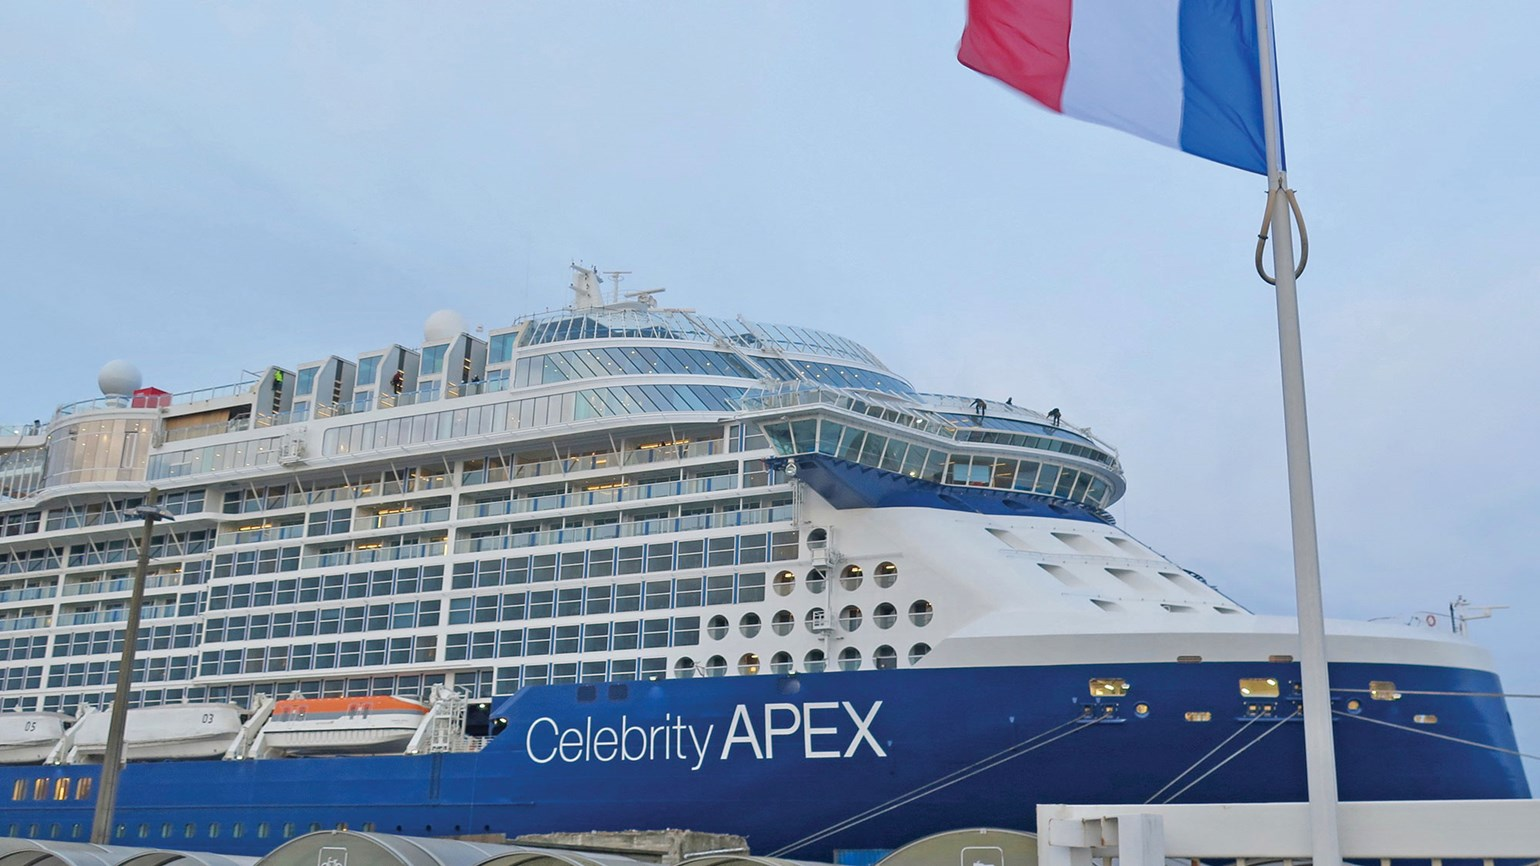 Celebrity Cruises reveals details about the Apex